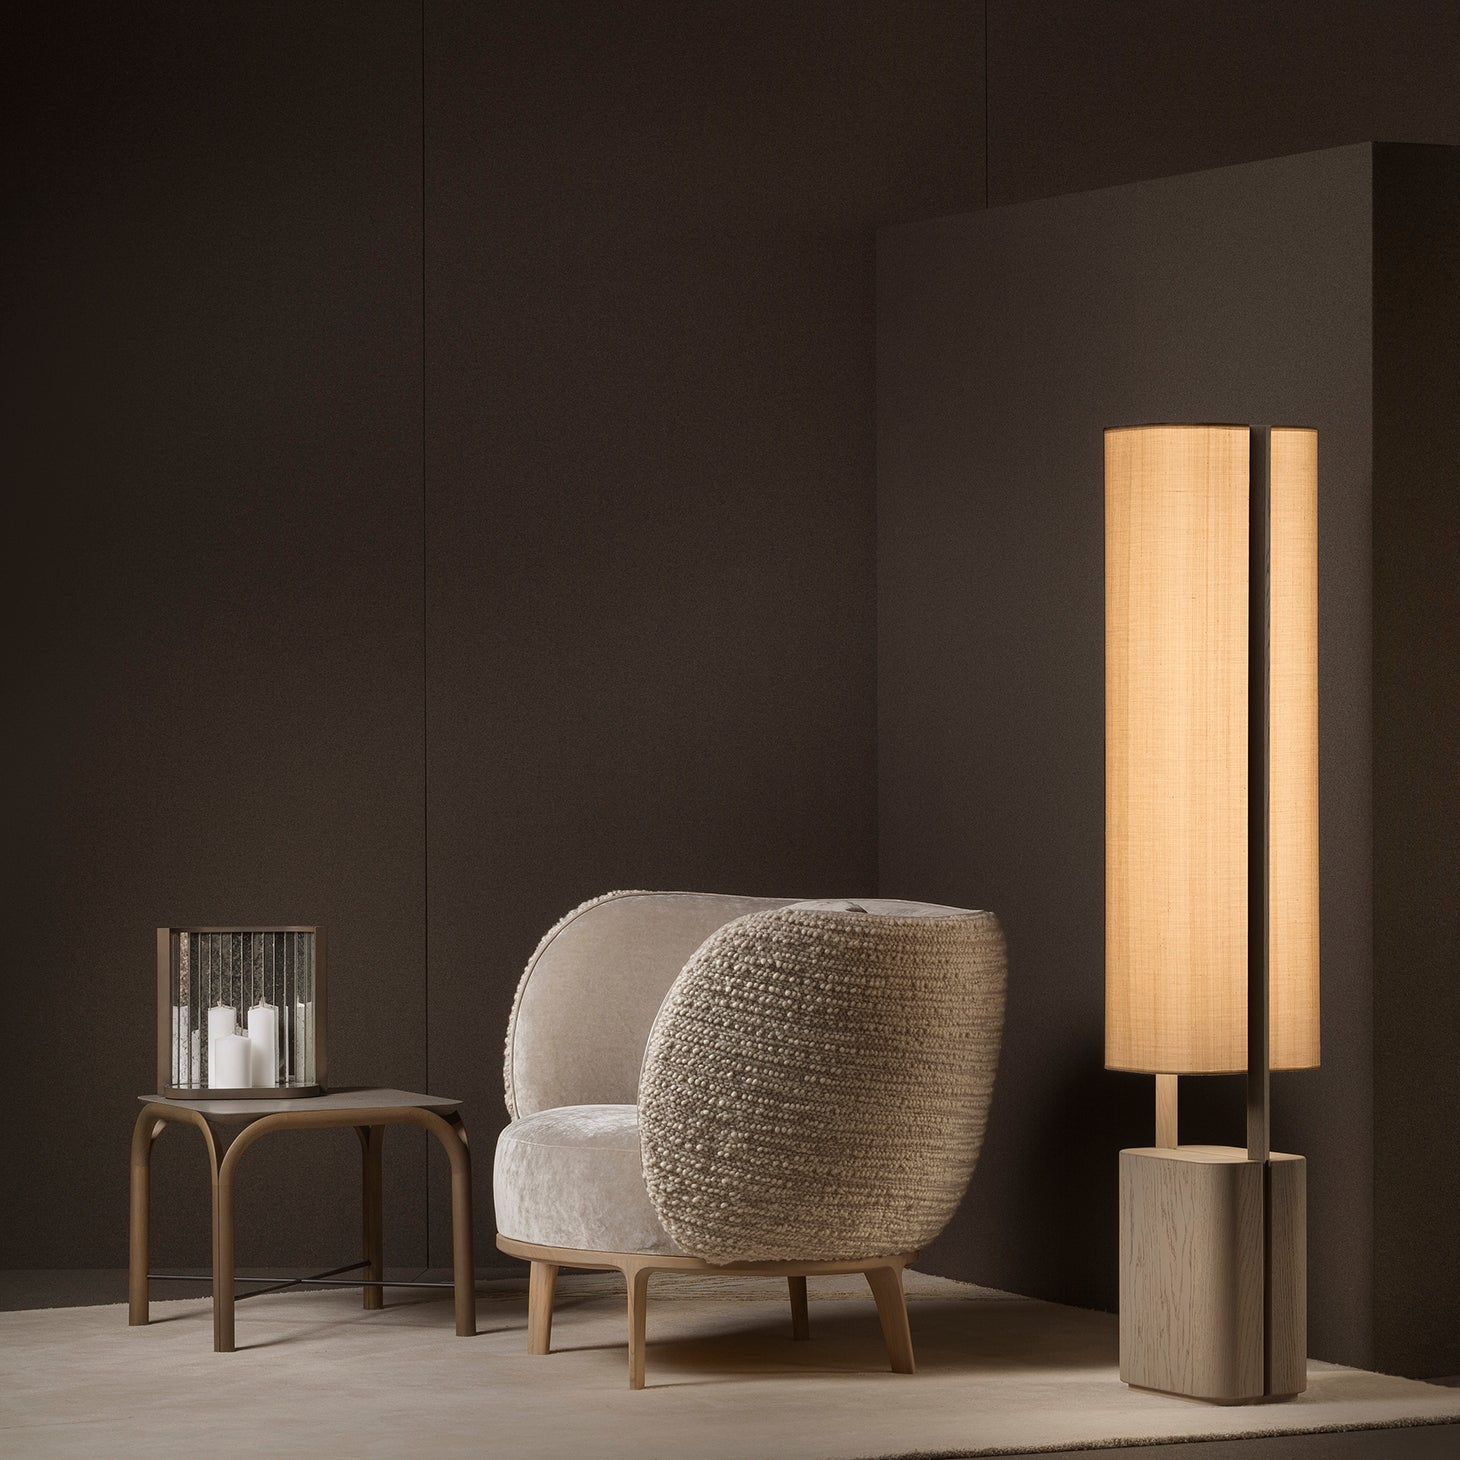 BARI Floor Lamp Lighting Bruno Moinard Designer Furniture Sku: 773-160-10027